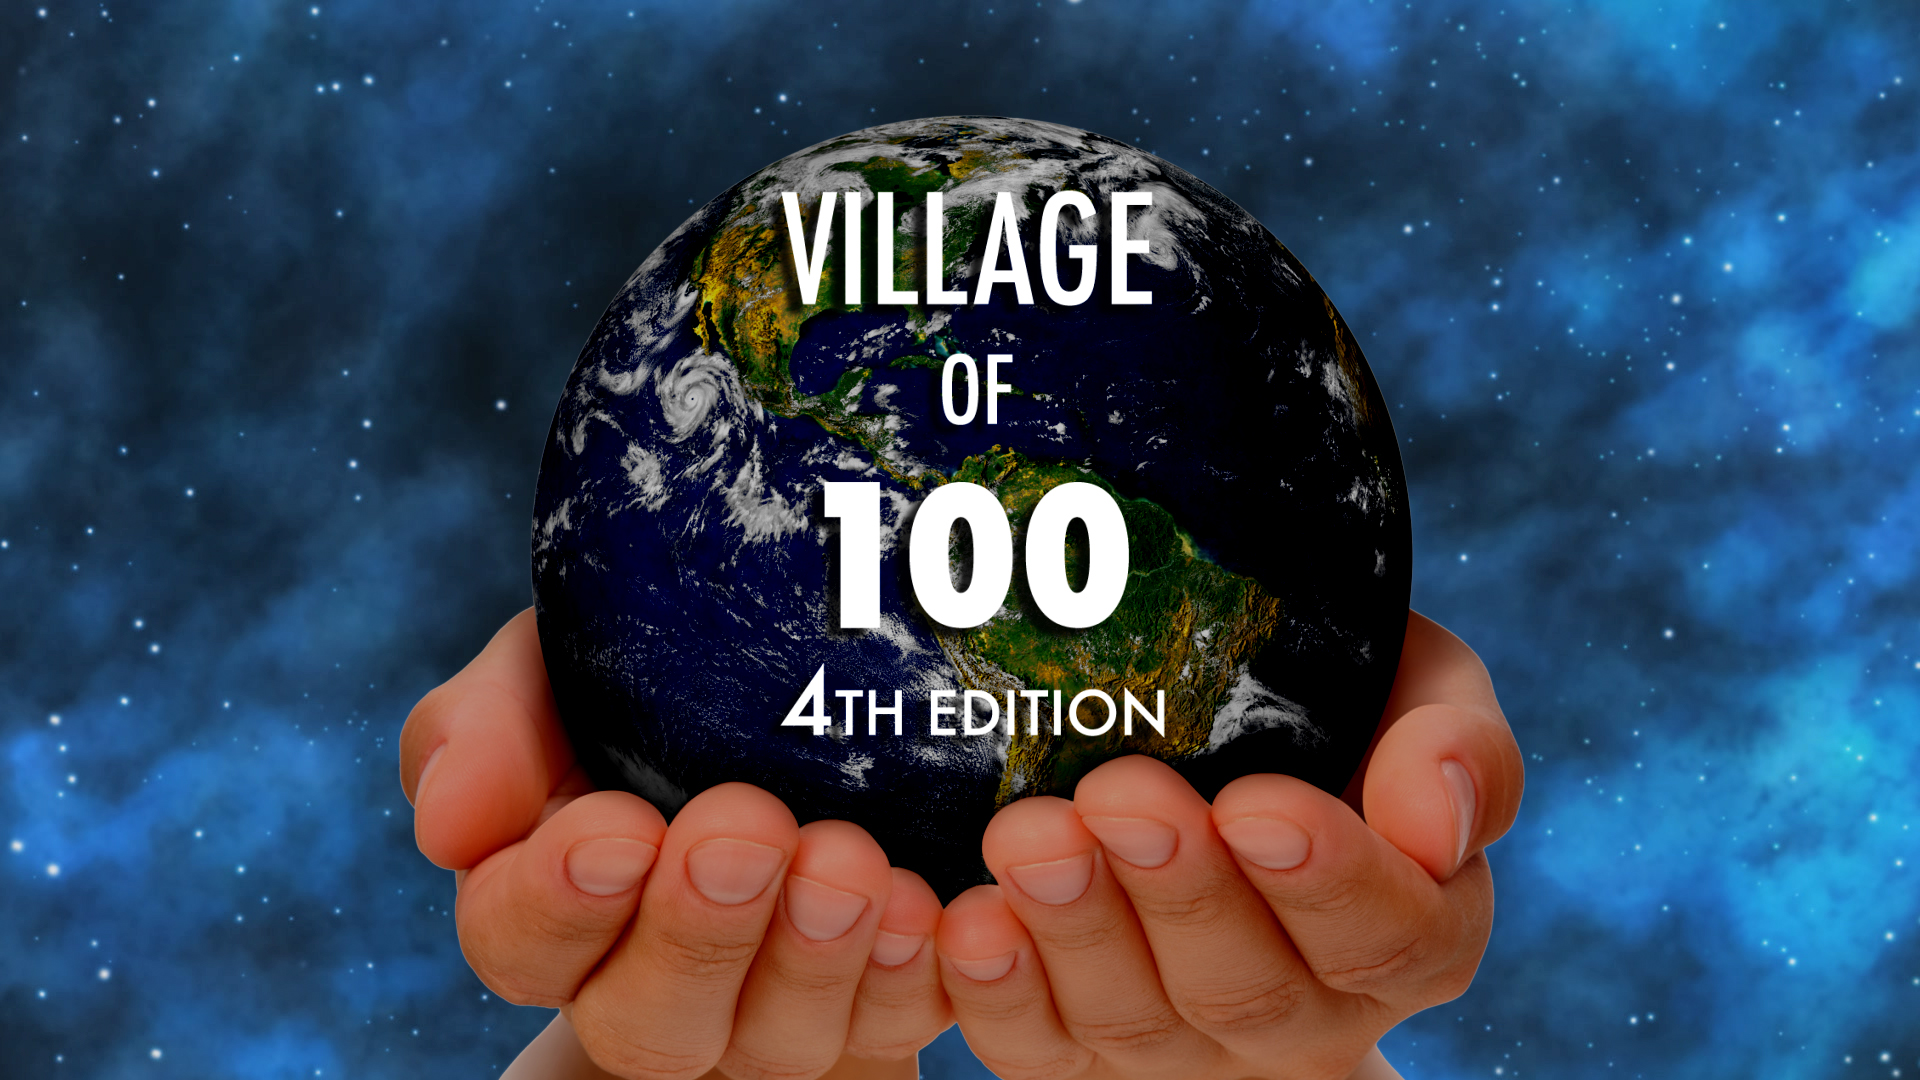 Village of 100 4th edition, for diversity and inclusion training.